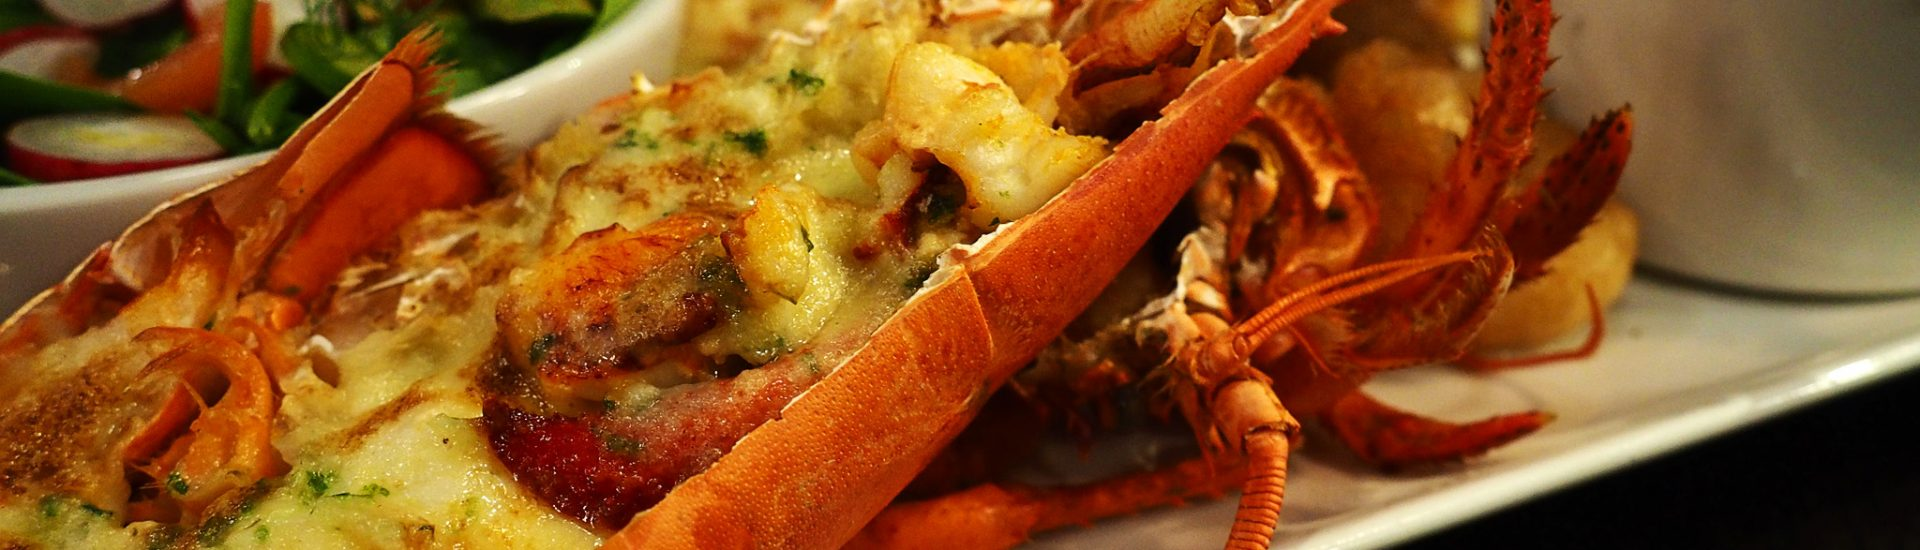 Lobster Thursdays at Brown's Restaurant